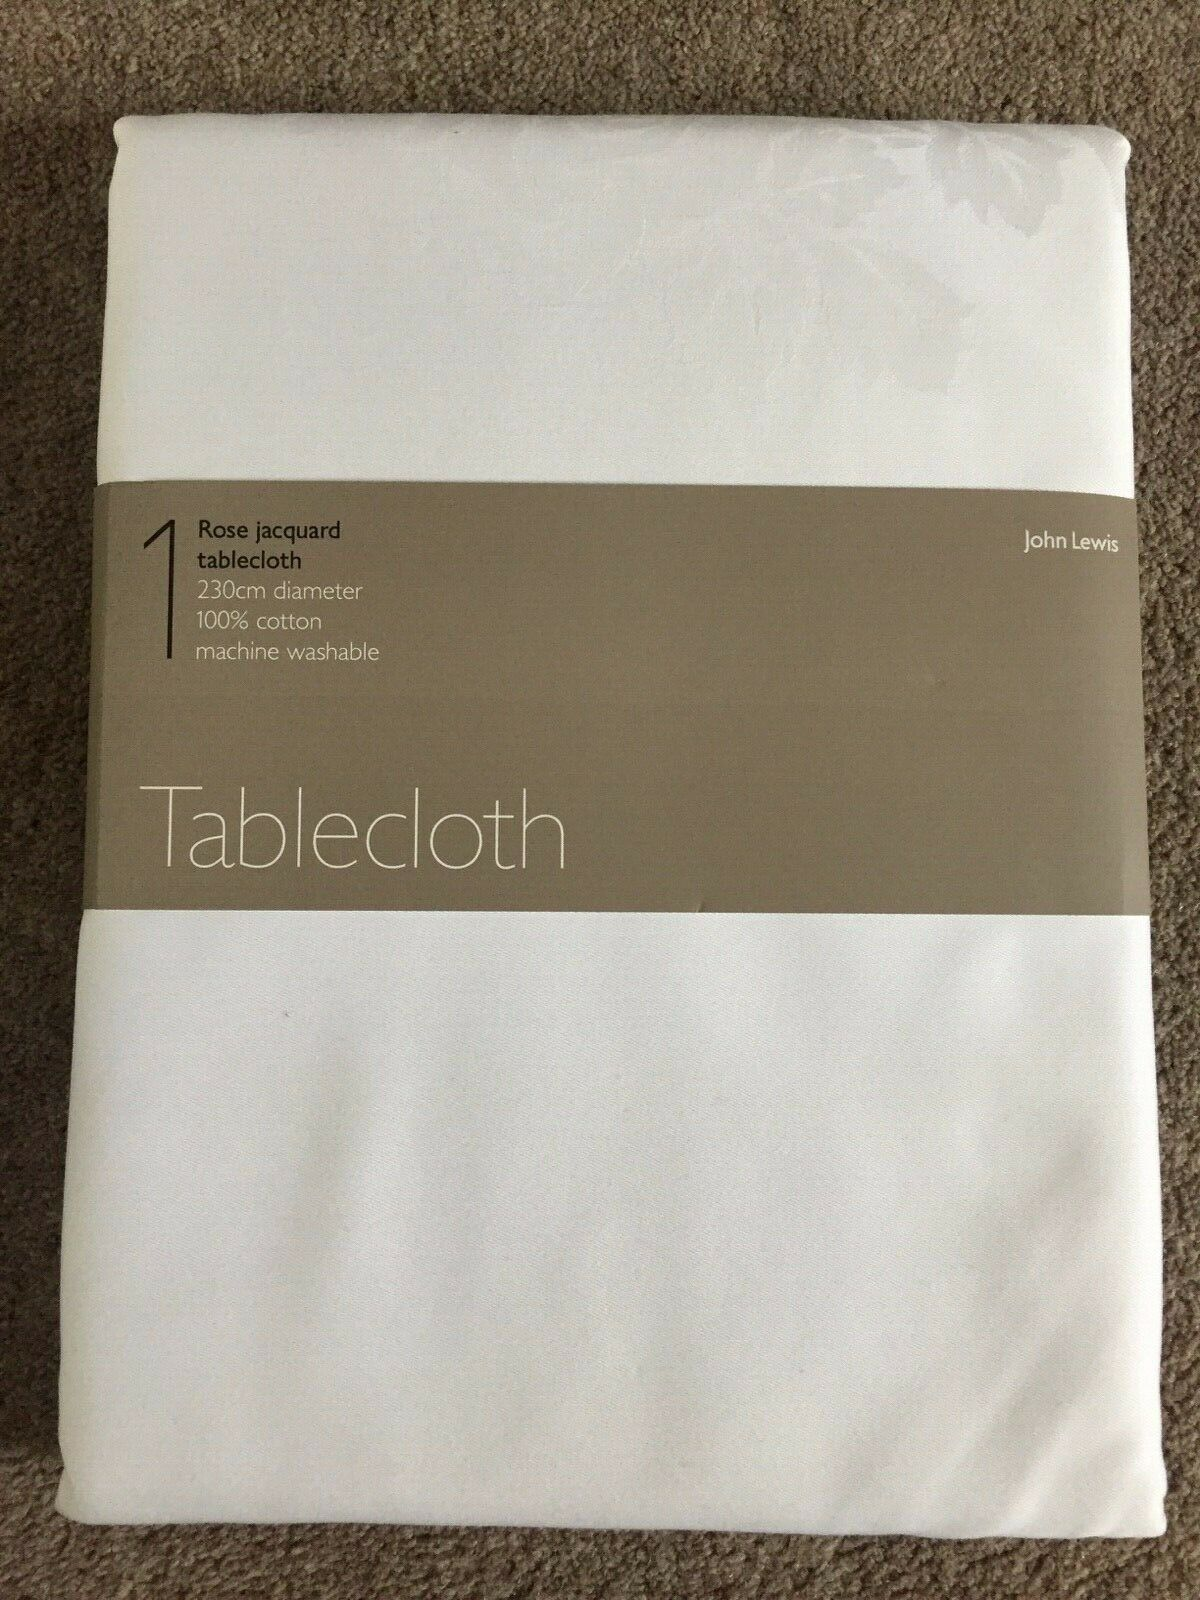 JOHN LEWIS pink JACQUARD TABLECLOTH IN WHITE, 230 CM DIAMETER, RRP